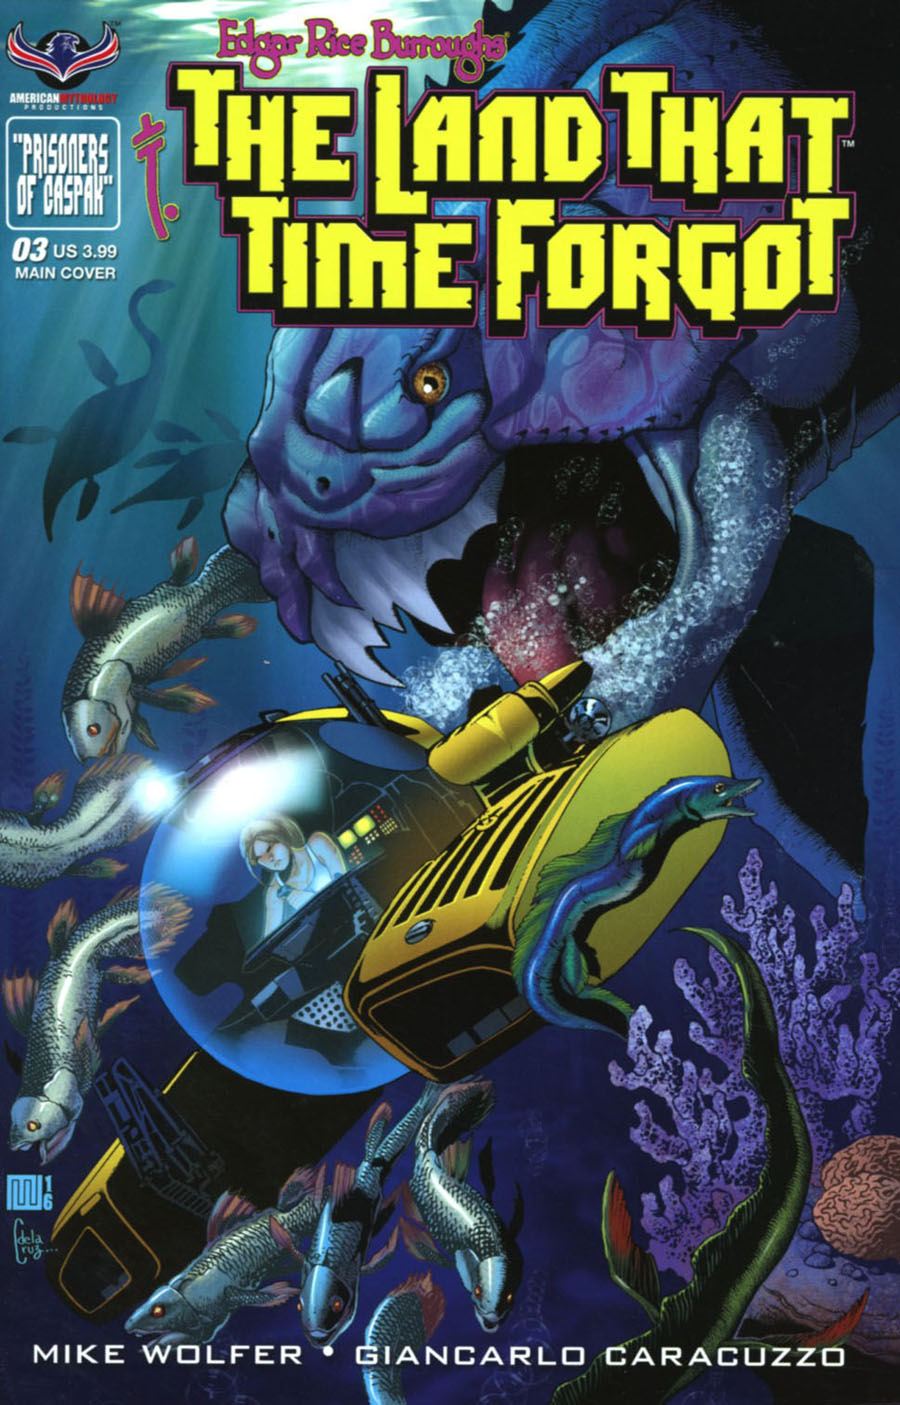 Edgar Rice Burroughs Land That Time Forgot #3 Cover A Regular Mike Wolfer Cover